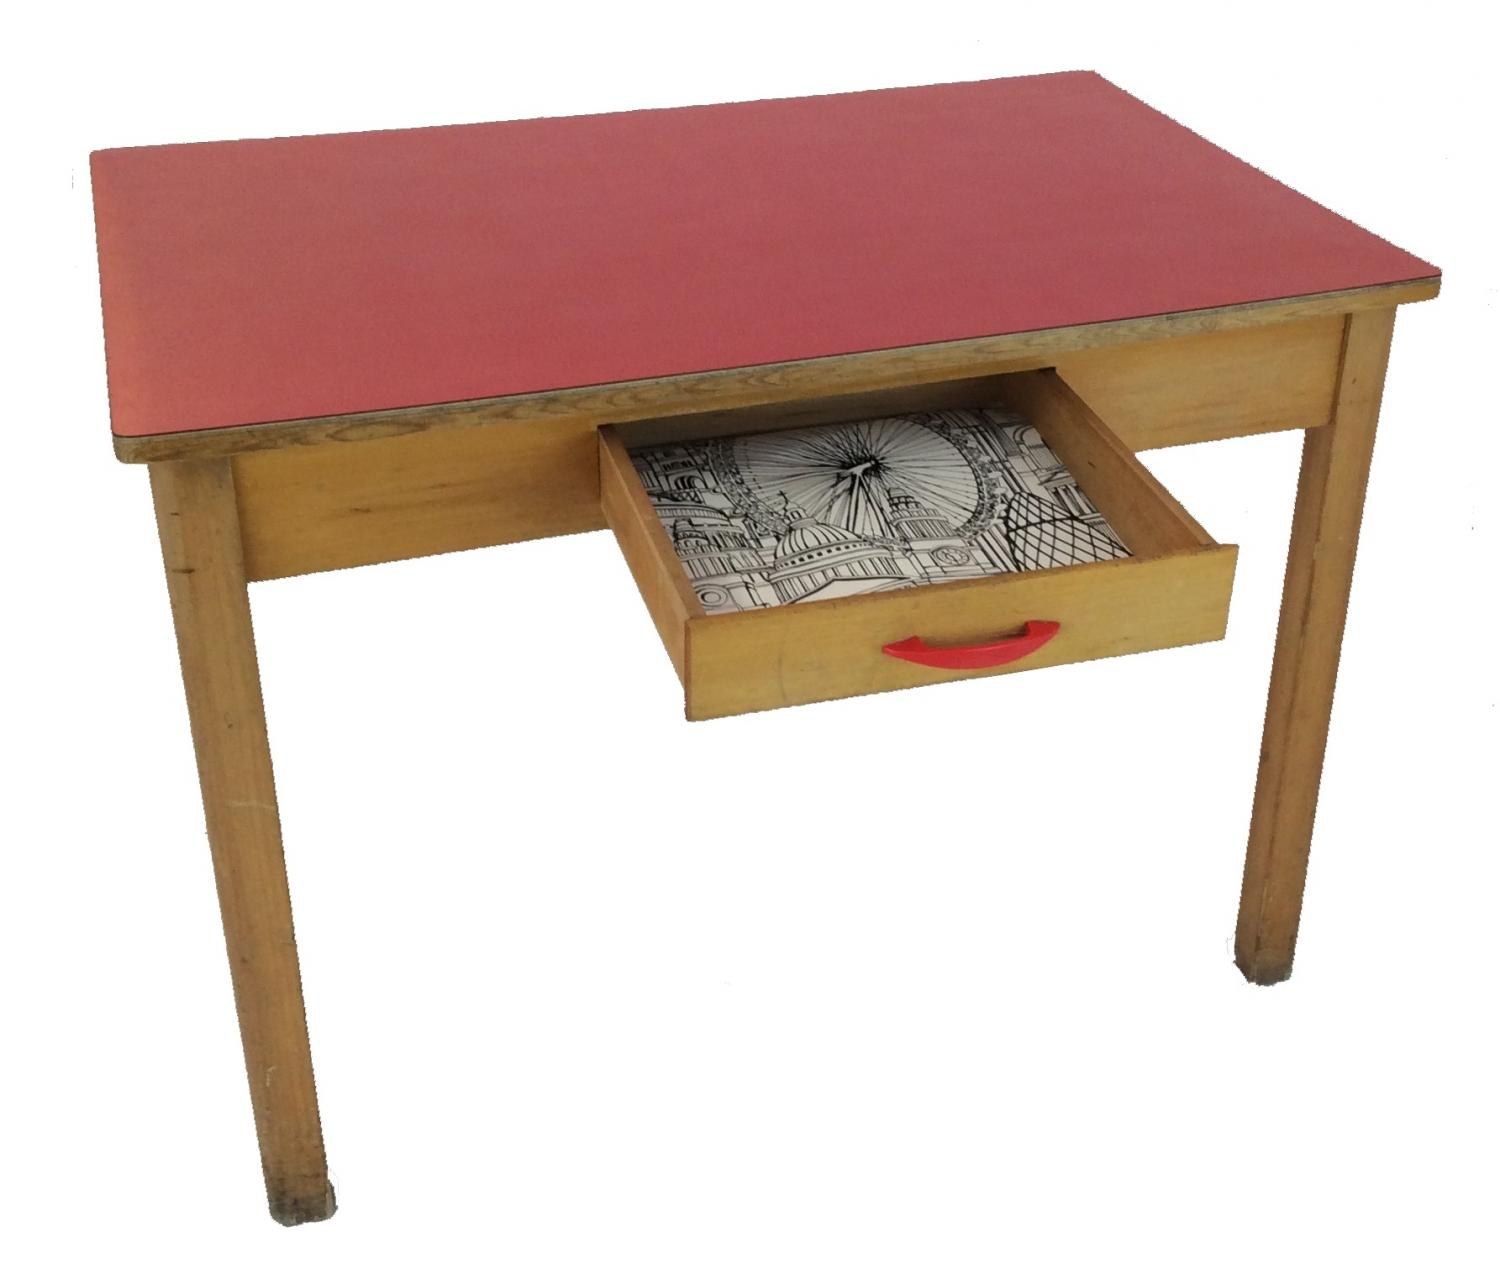 Retro red formica table in sold recently for Vintage formica table